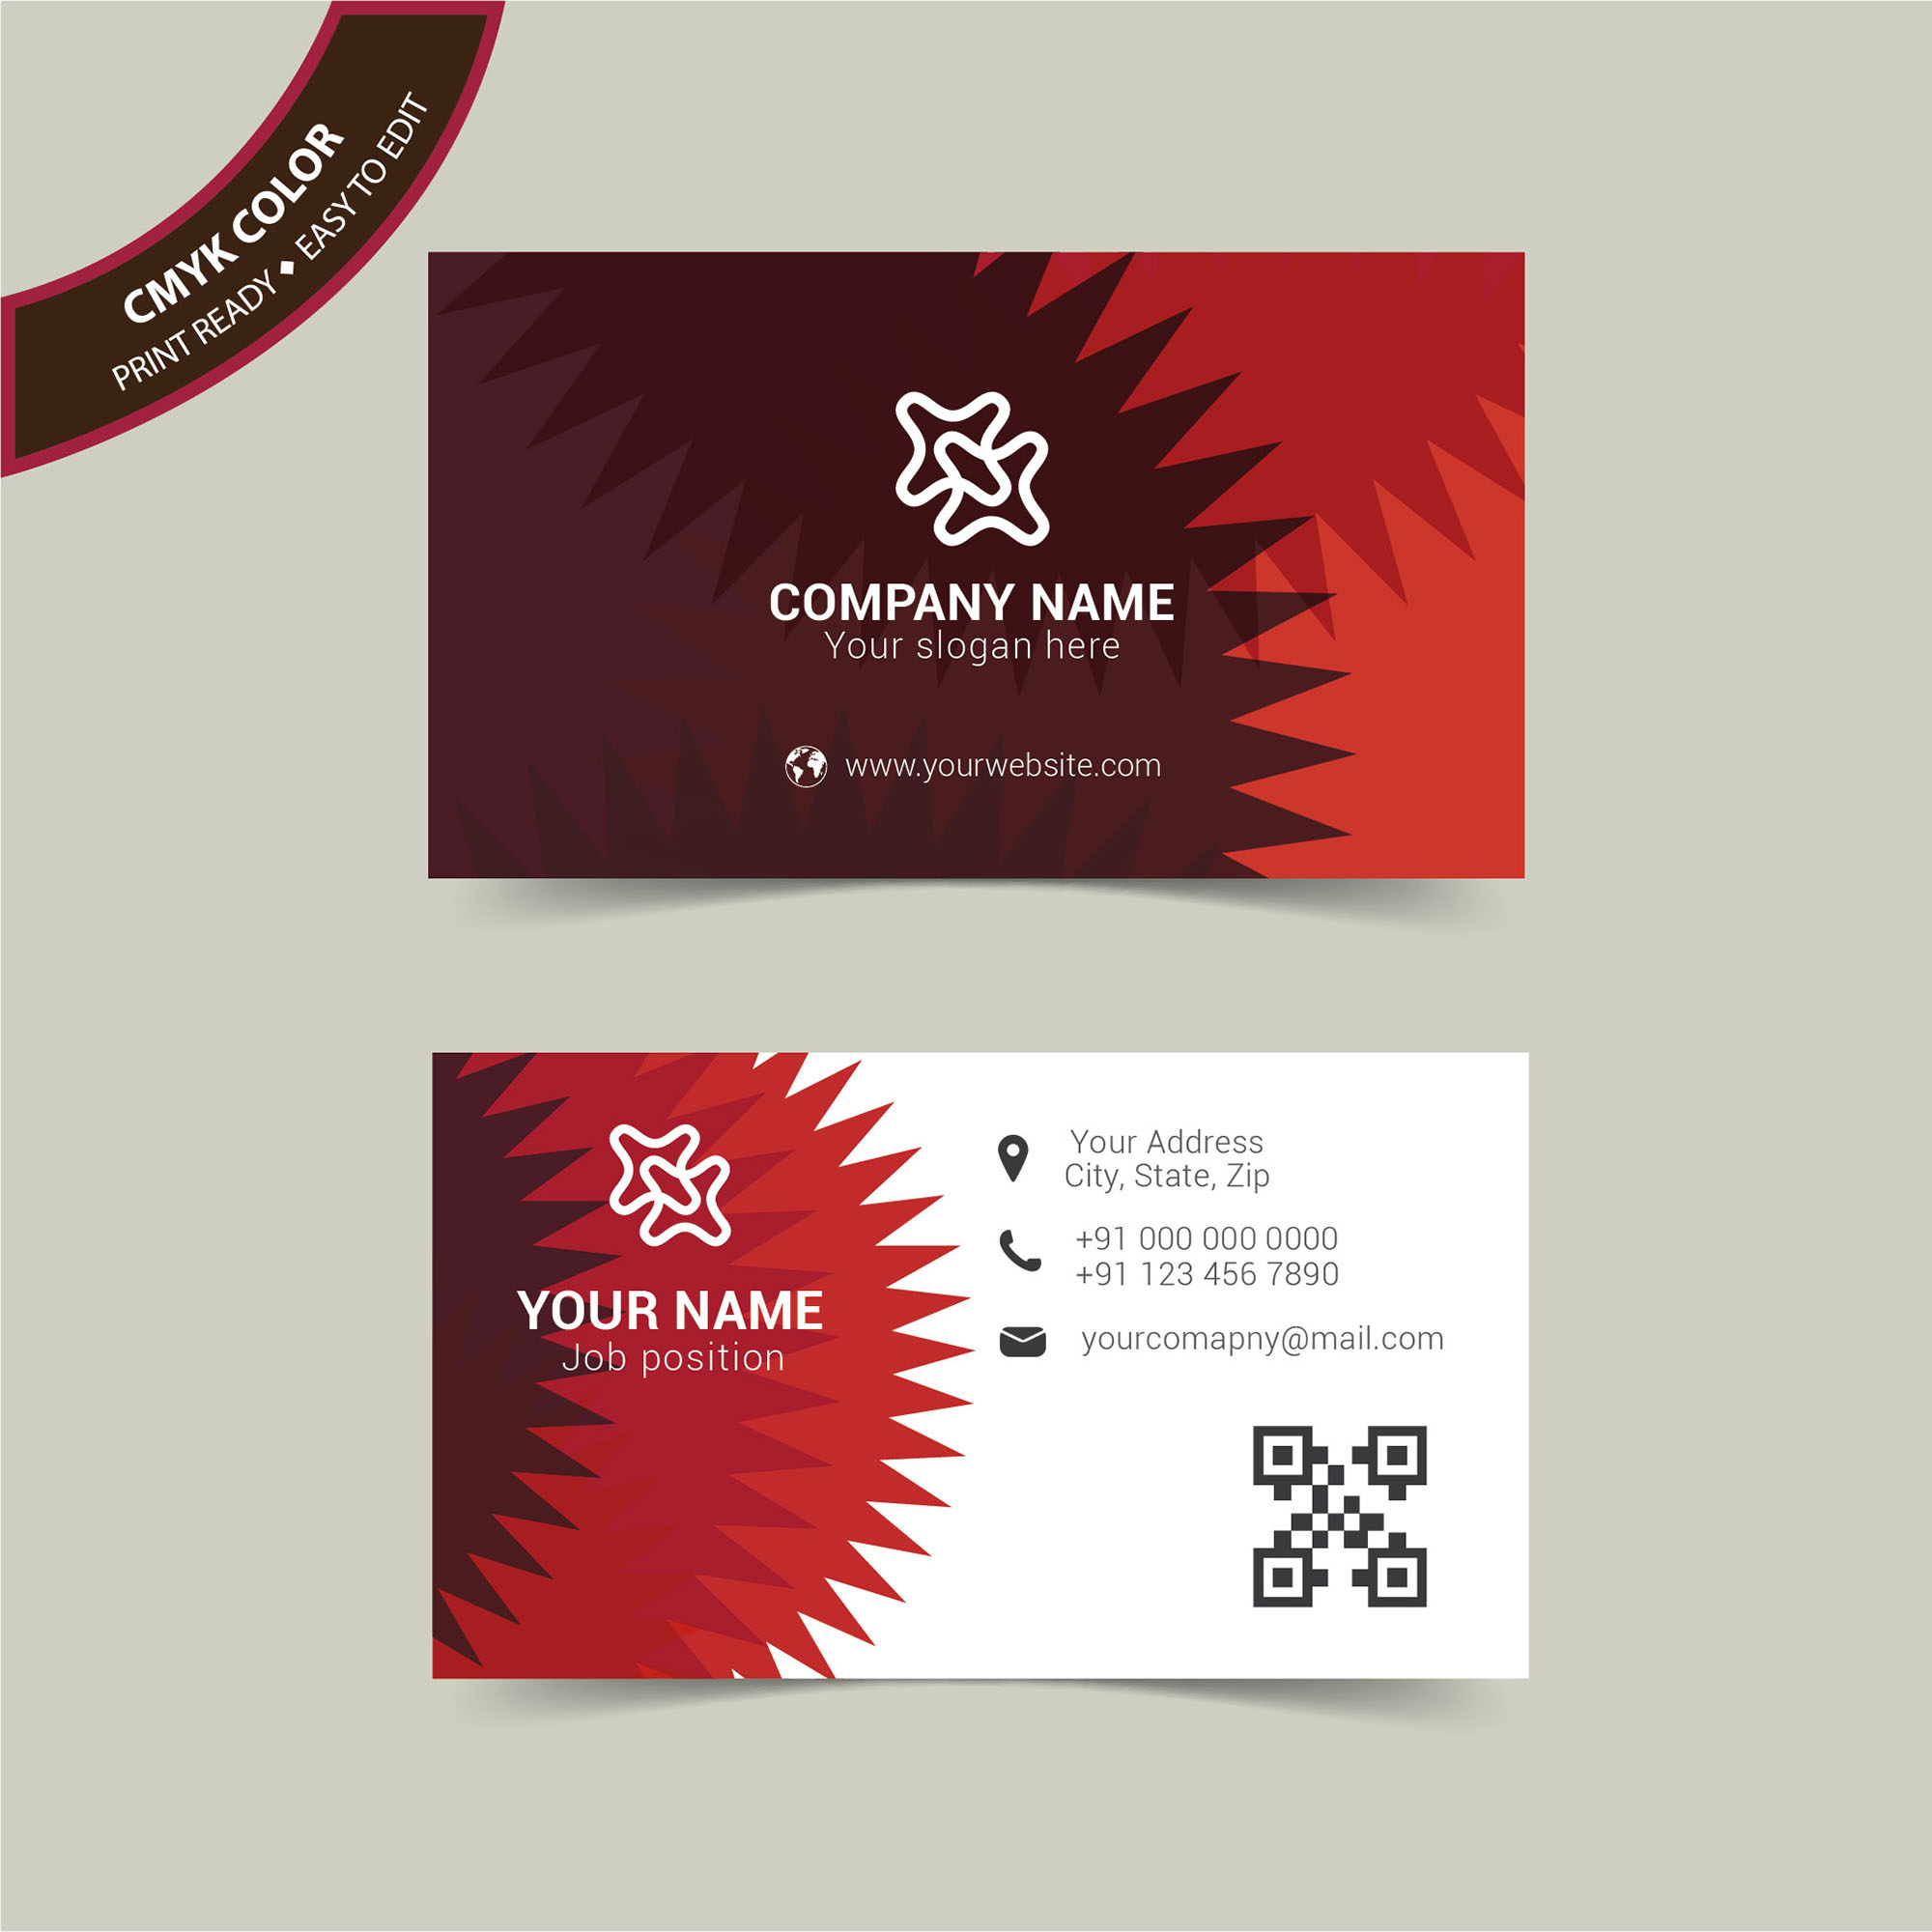 Abstract professional business card free download wisxi business card business cards business card design business card template design templates wajeb Choice Image